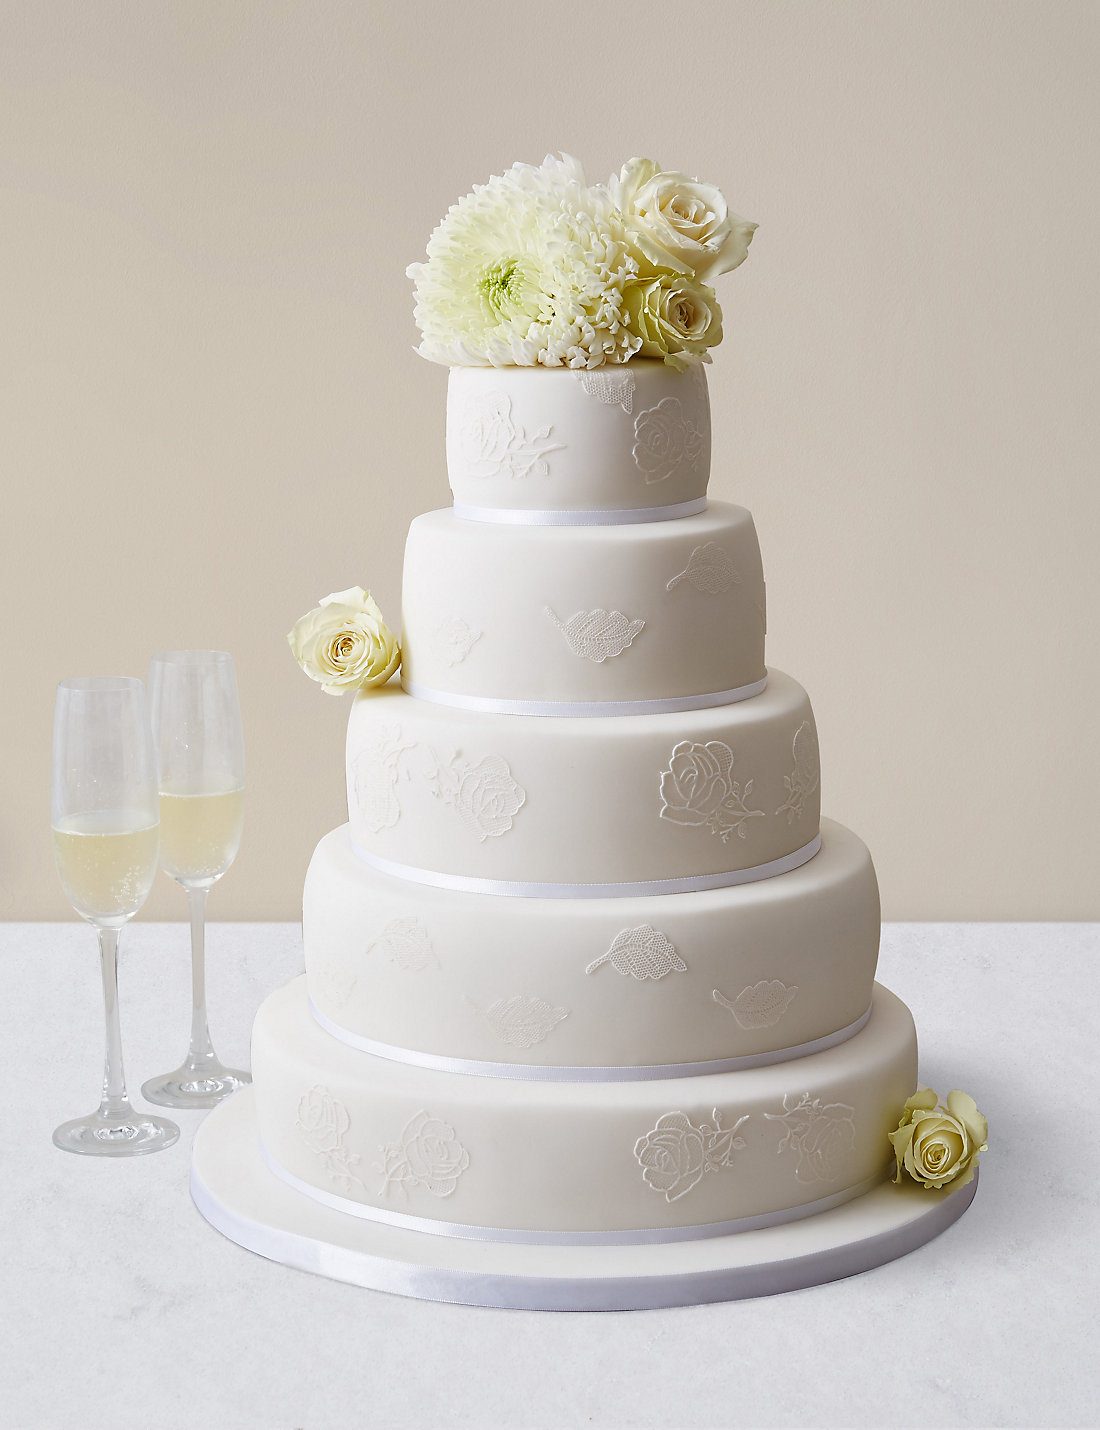 Embroidered Lace Wedding Cake White Icing